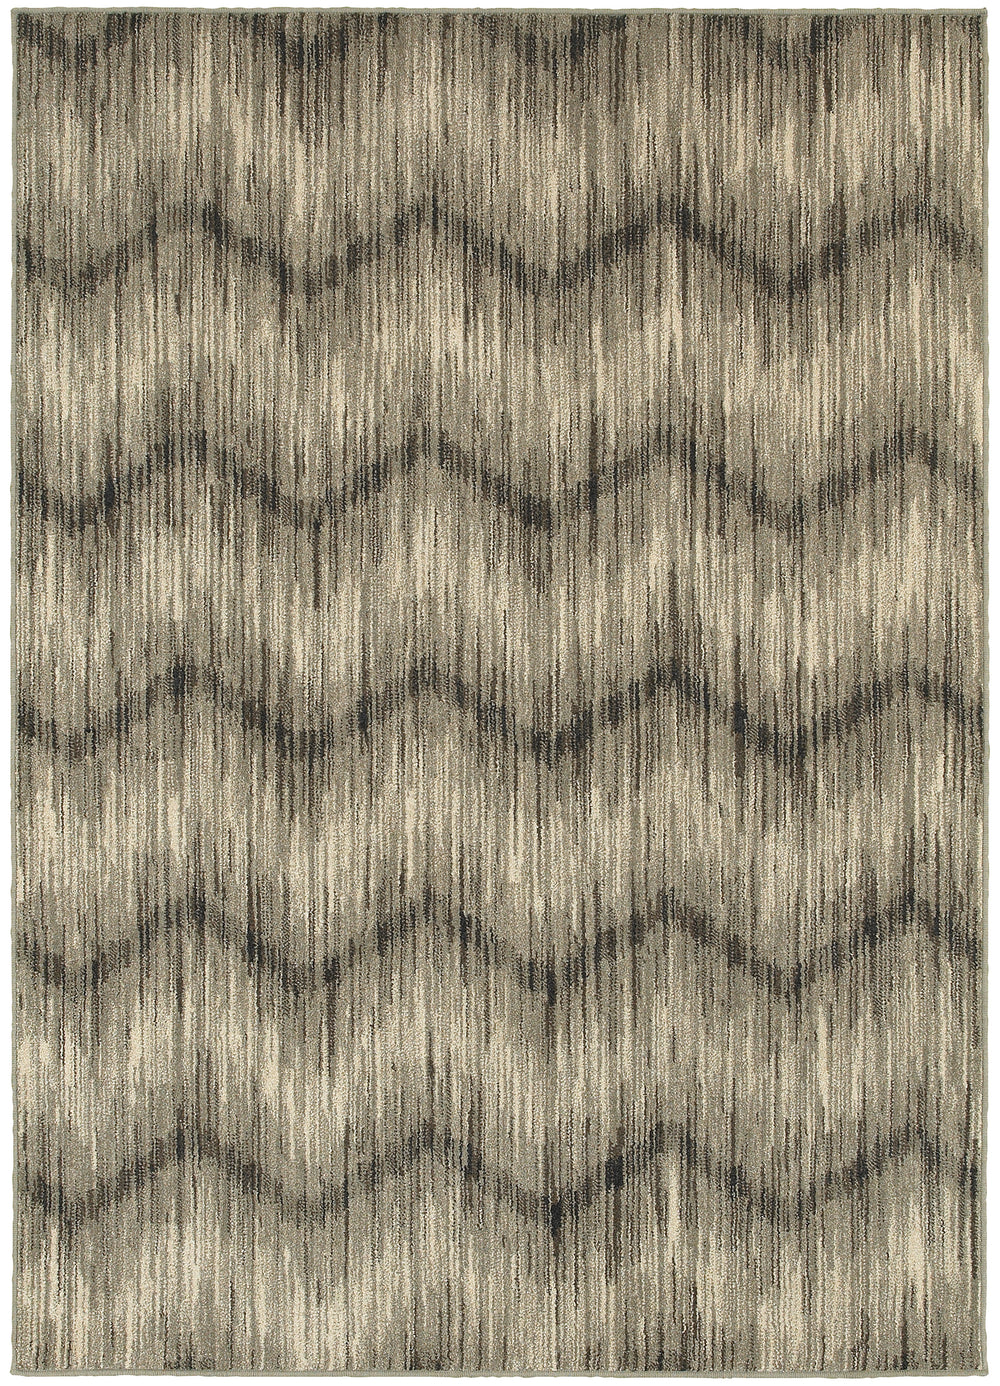 Oriental Weavers Highlands 6608 Area Rug